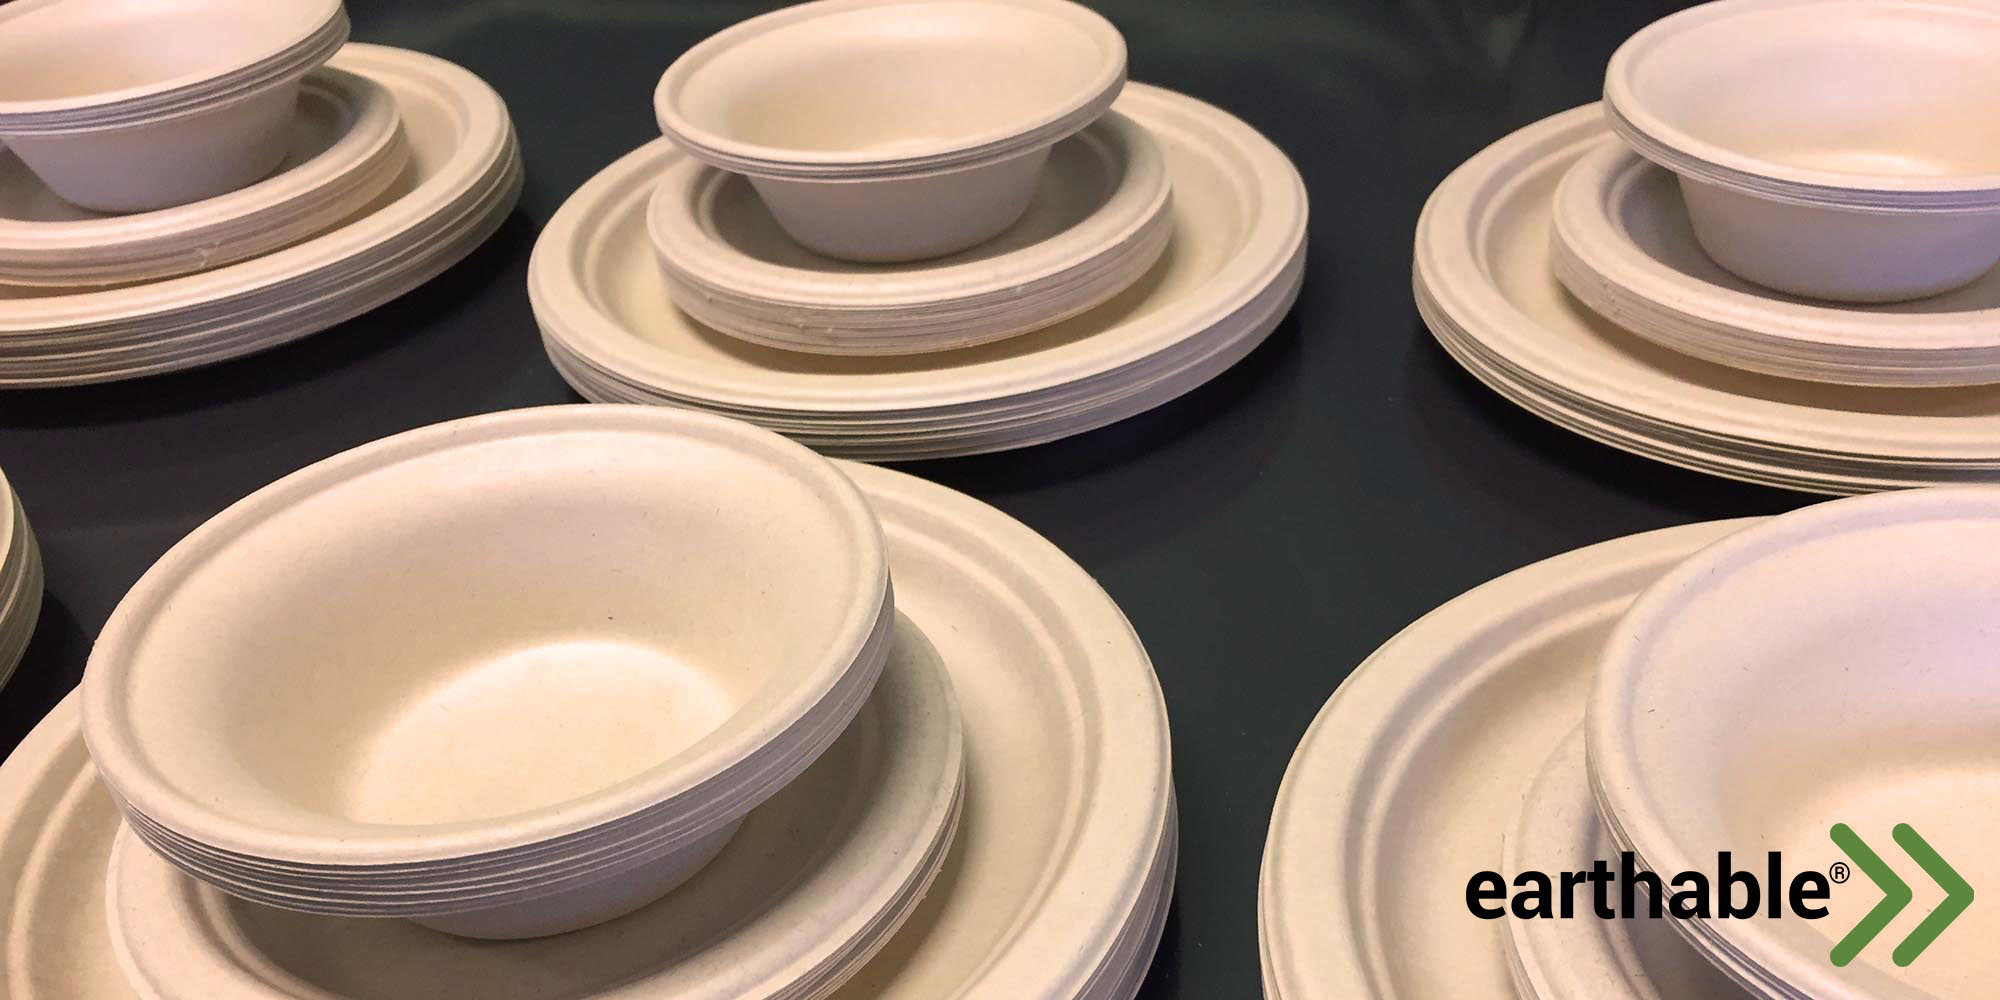 A photo of molded plates and bowls with an Earthable logo